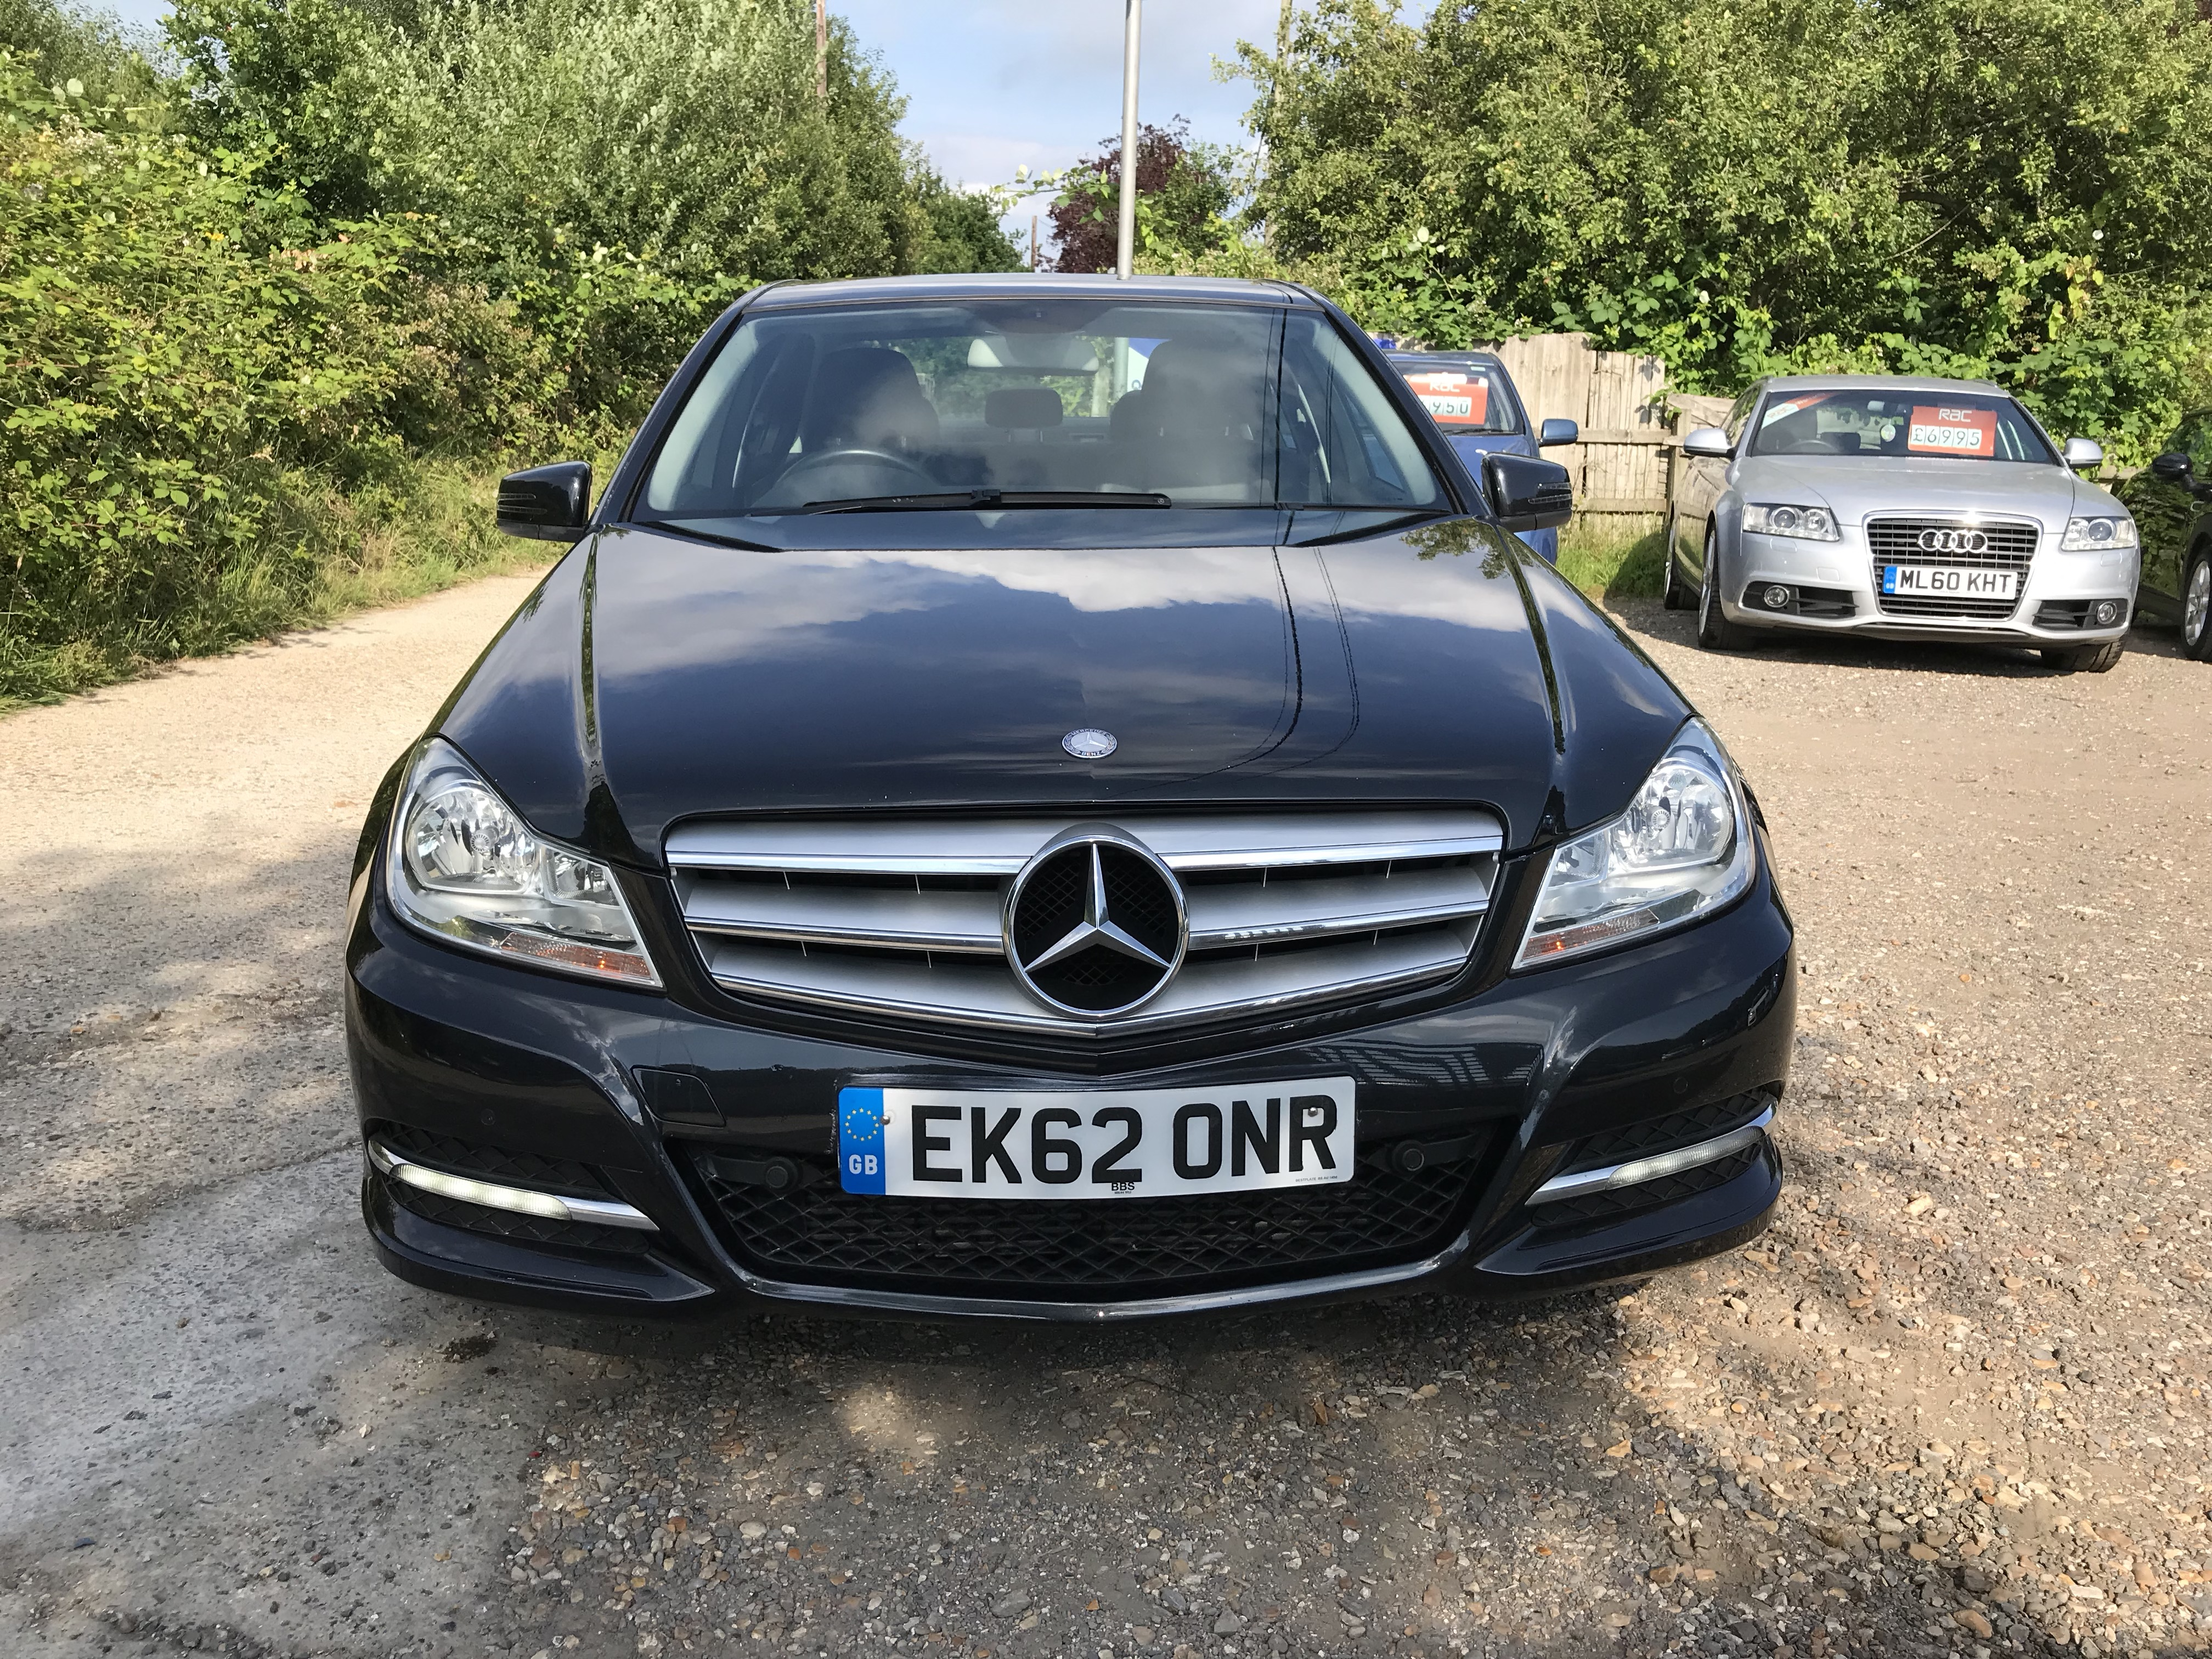 Mercedes-Benz C Class 2 1 C200 CDI SE (Executive) 4dr 2012 (62) 95,966  miles Diesel Manual Black 2 owners, FULL SERVICE HISTORY | Lan Motors Ltd